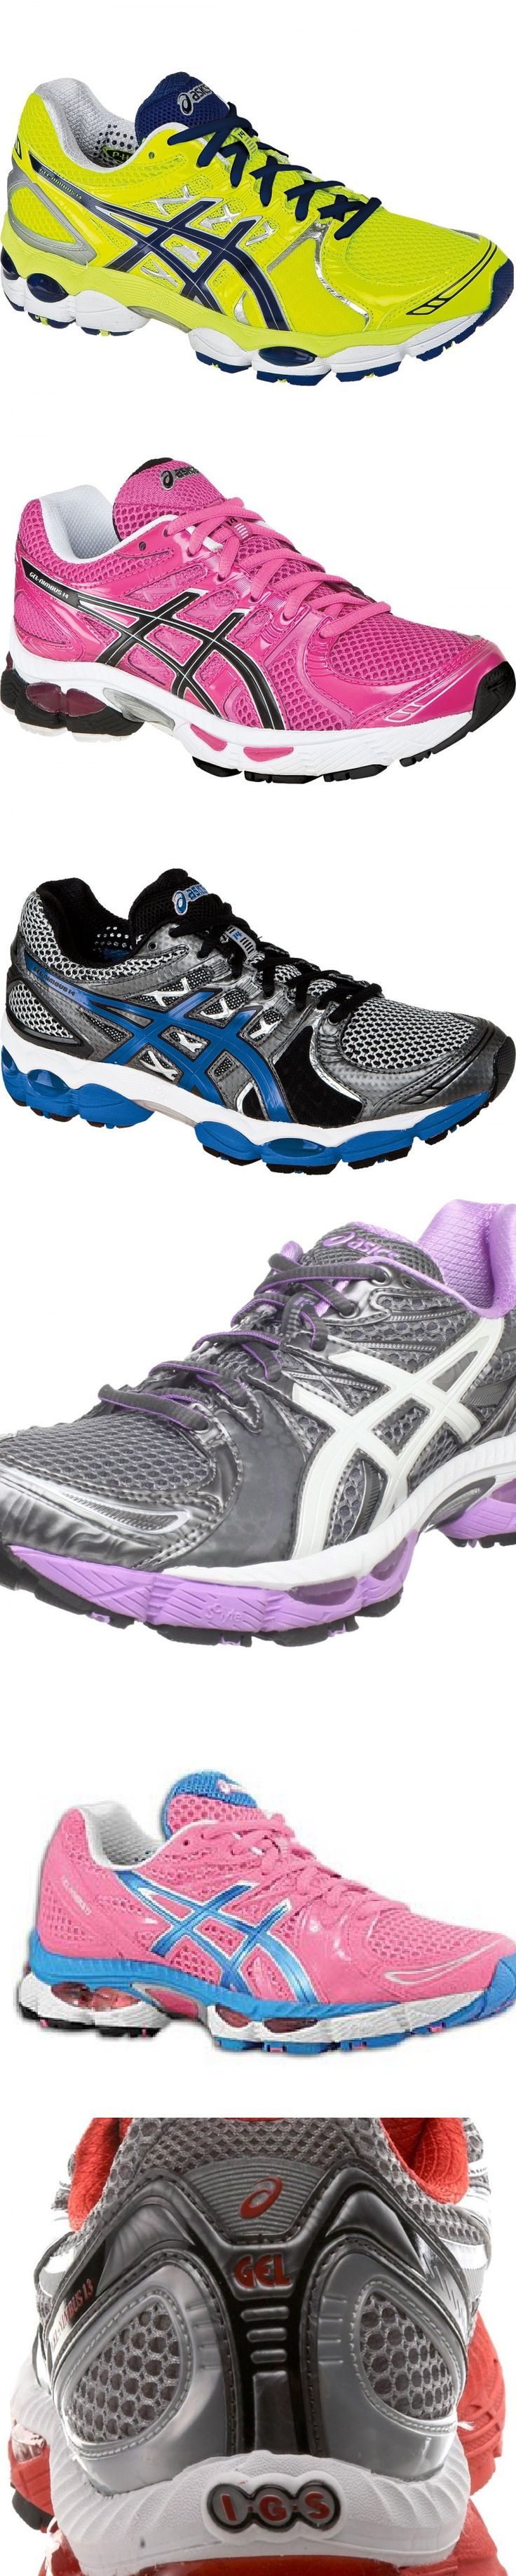 Asics Gel-Nimbus running shoes- best cushioning, stability and comfort. No more injuries and stress accumulated in your legs.